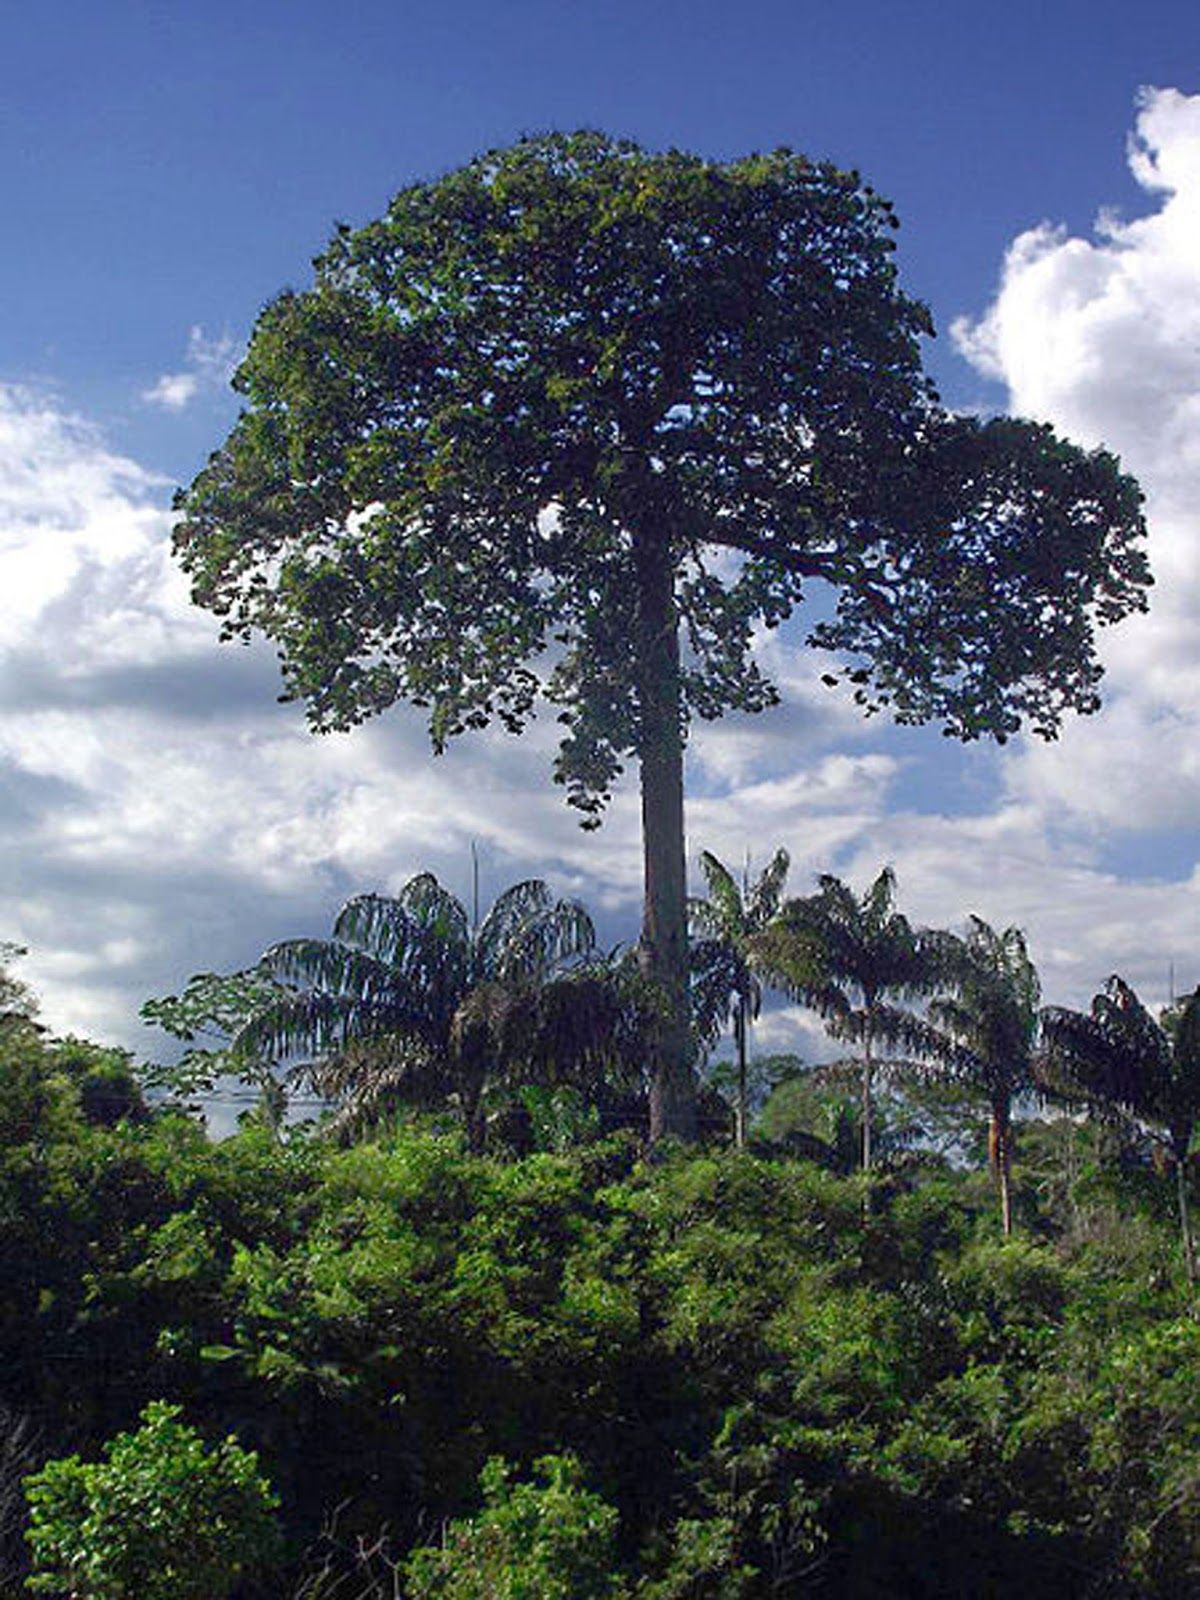 planting trees in the amazon rainforest